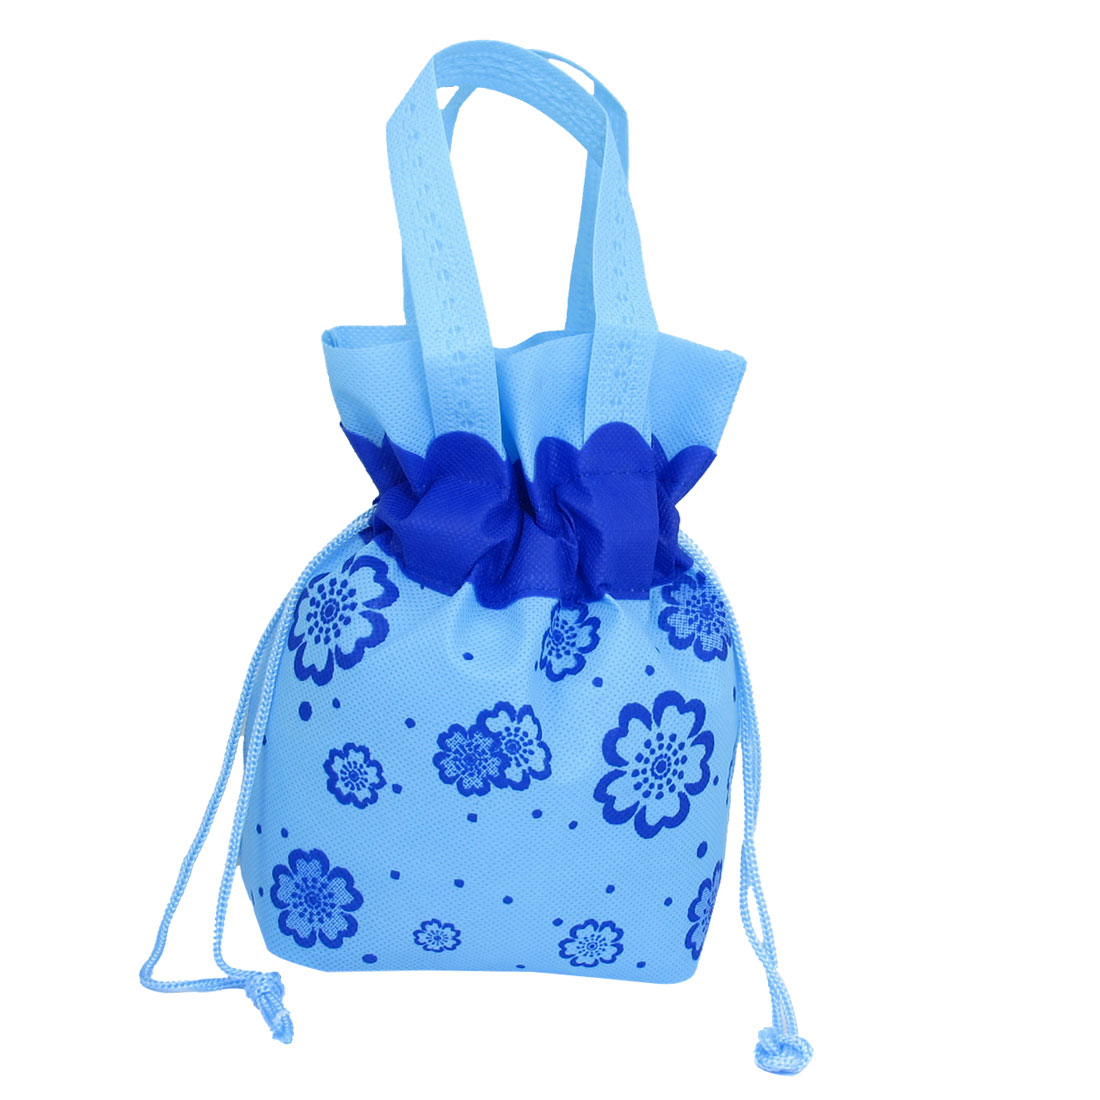 Unique Bargains Reusable Floral Printed Water Resistant Shopping Totes Handbag Light Blue